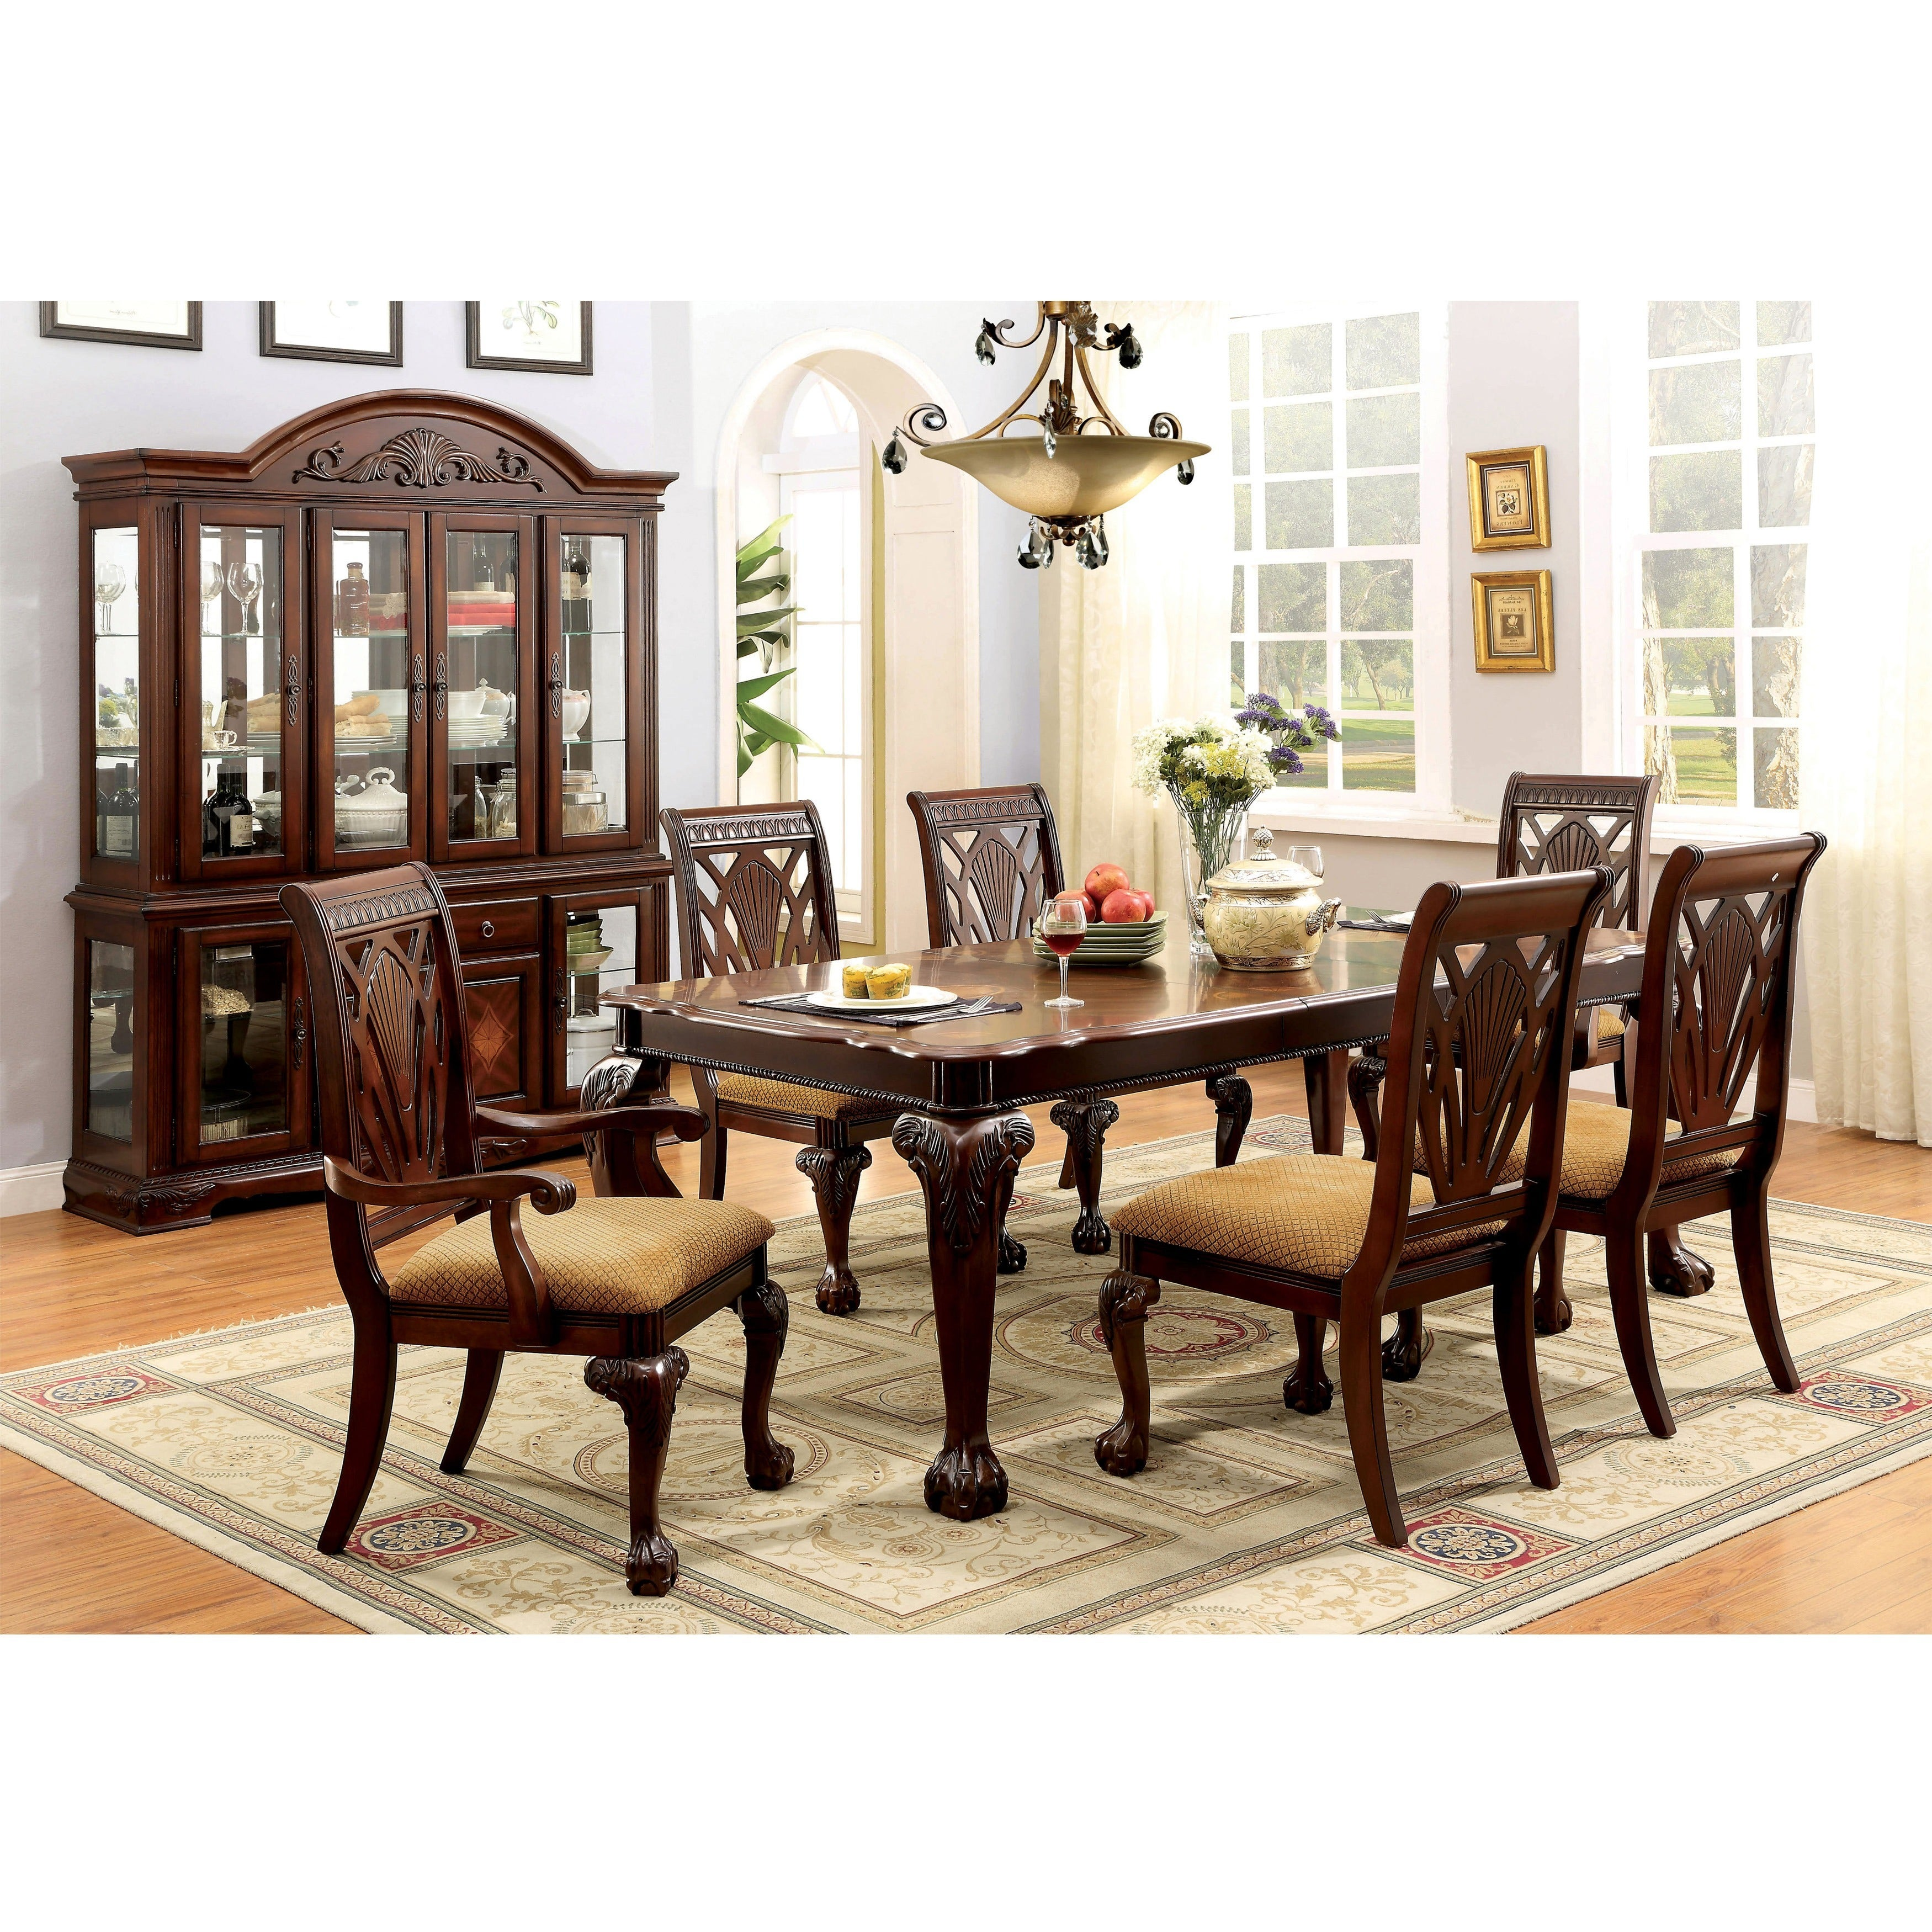 Traditional Cherry Casual Carved Design Dining Room Round: Shop Furniture Of America Ranfort Formal 7-Piece Cherry